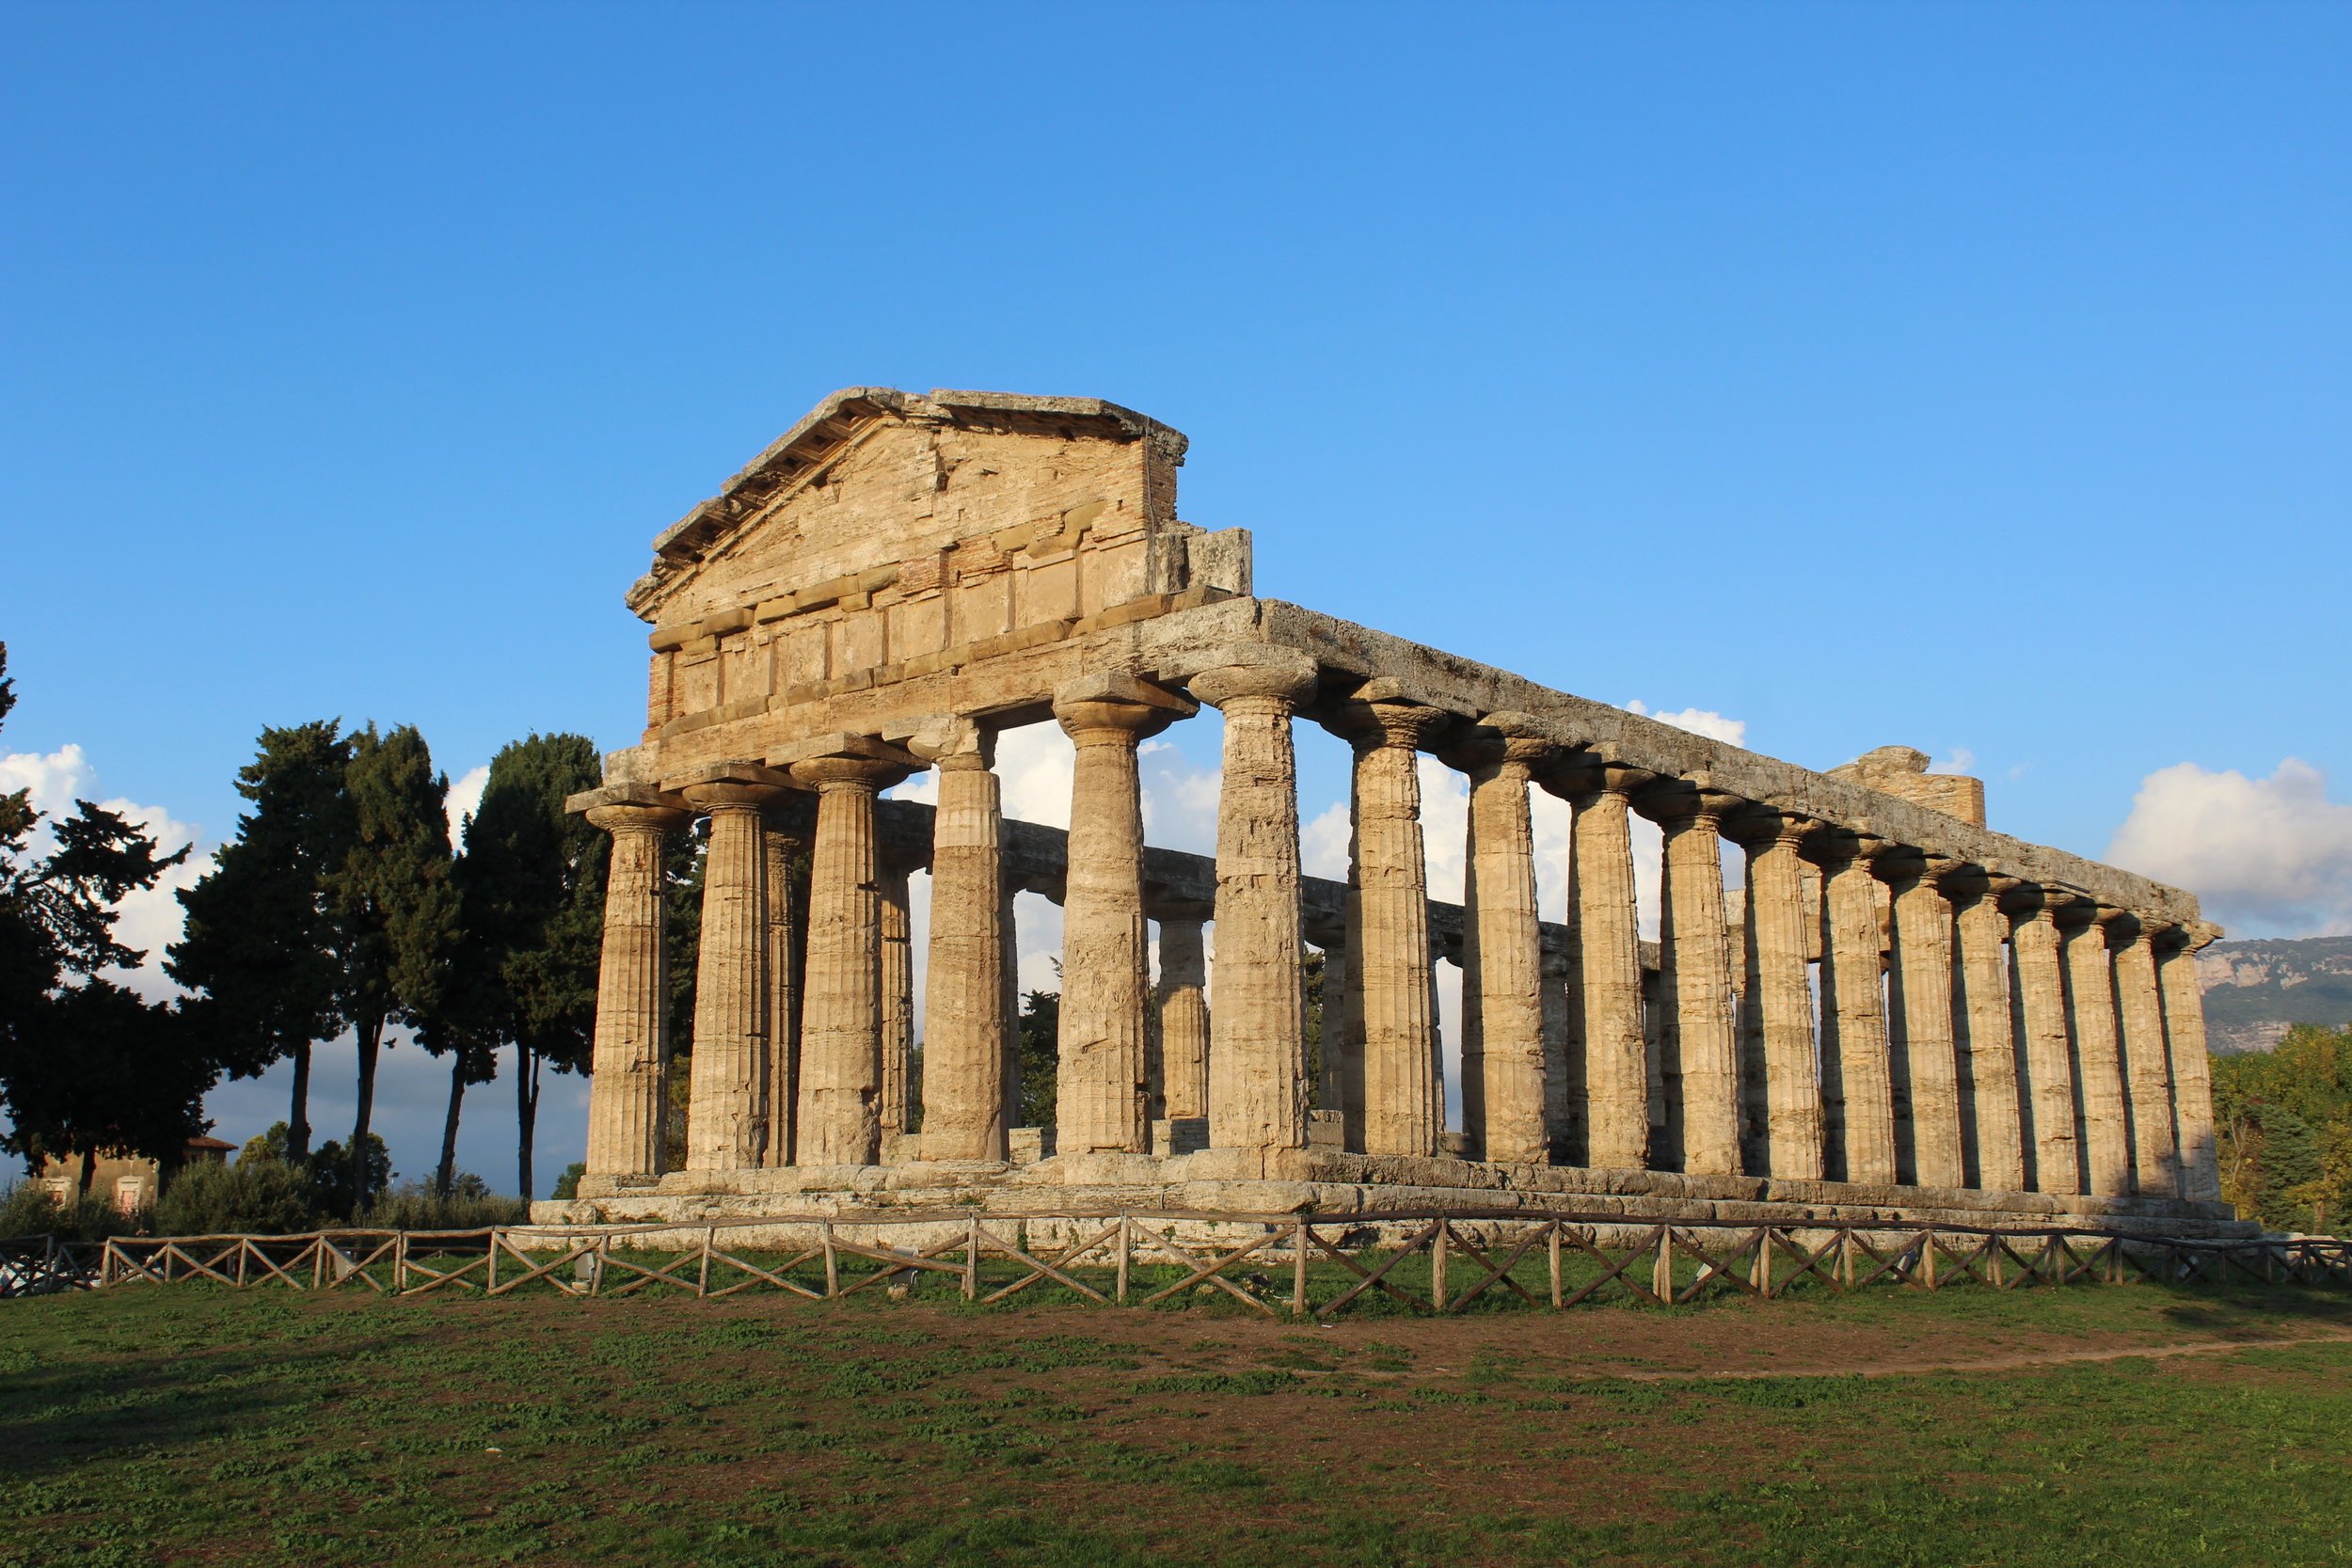 Greek temple built in the 6th century B.C.E. at Paestum